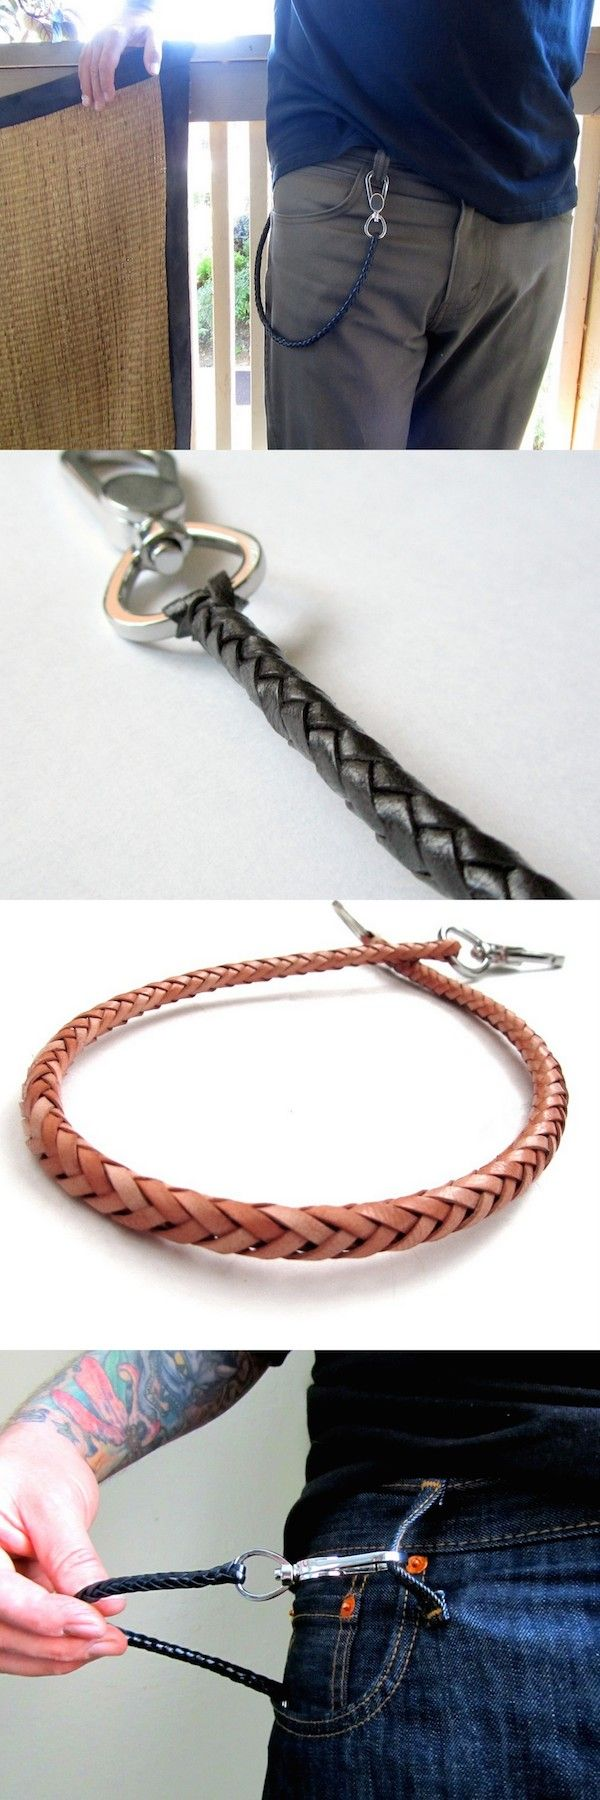 San Filippo Leather's Braided Leather Wallet Chain. Great alternative to a regular metal chain.  Mens fashion